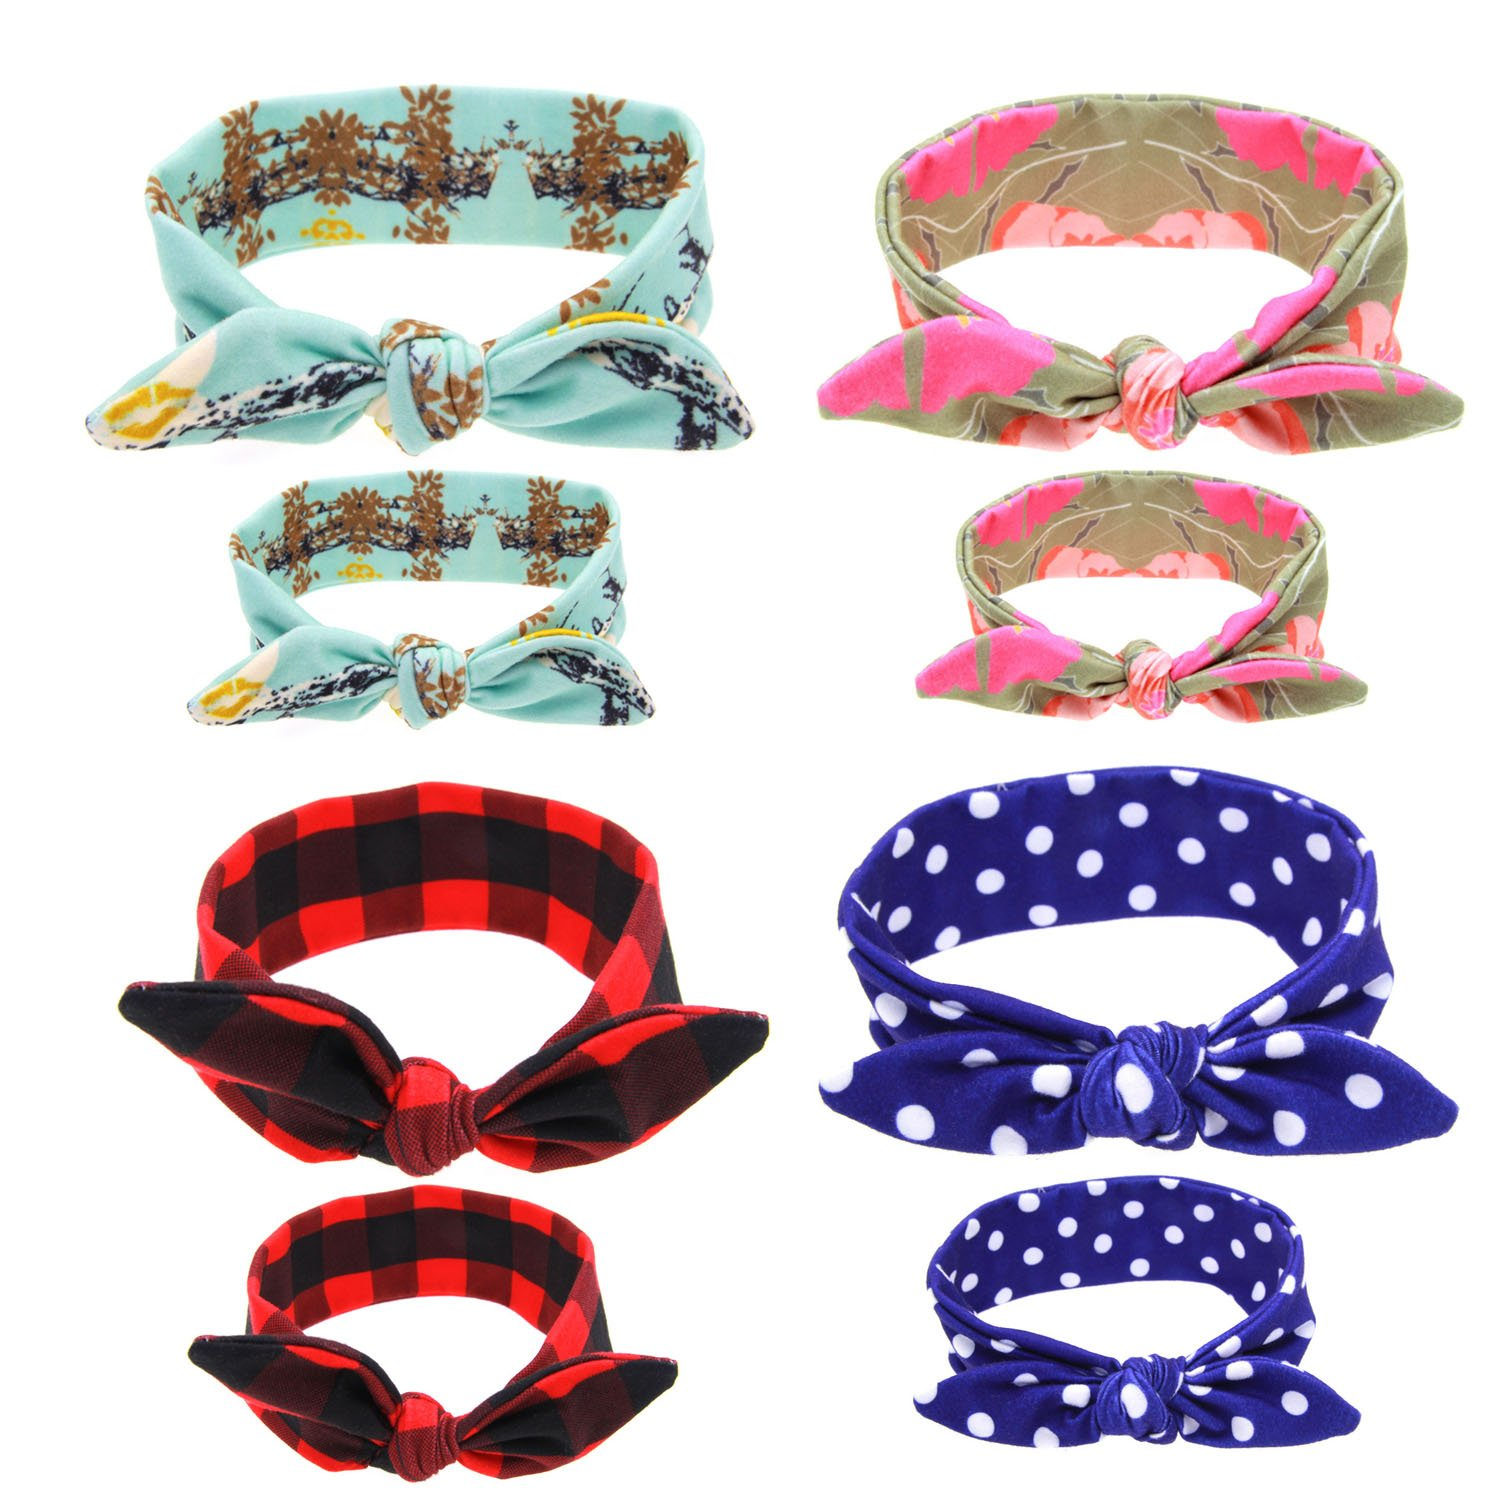 Topcoco 12PCS Baby and Mom Headbands Bow and Knot Hair Bands Elastic Headwear TP18012201-1